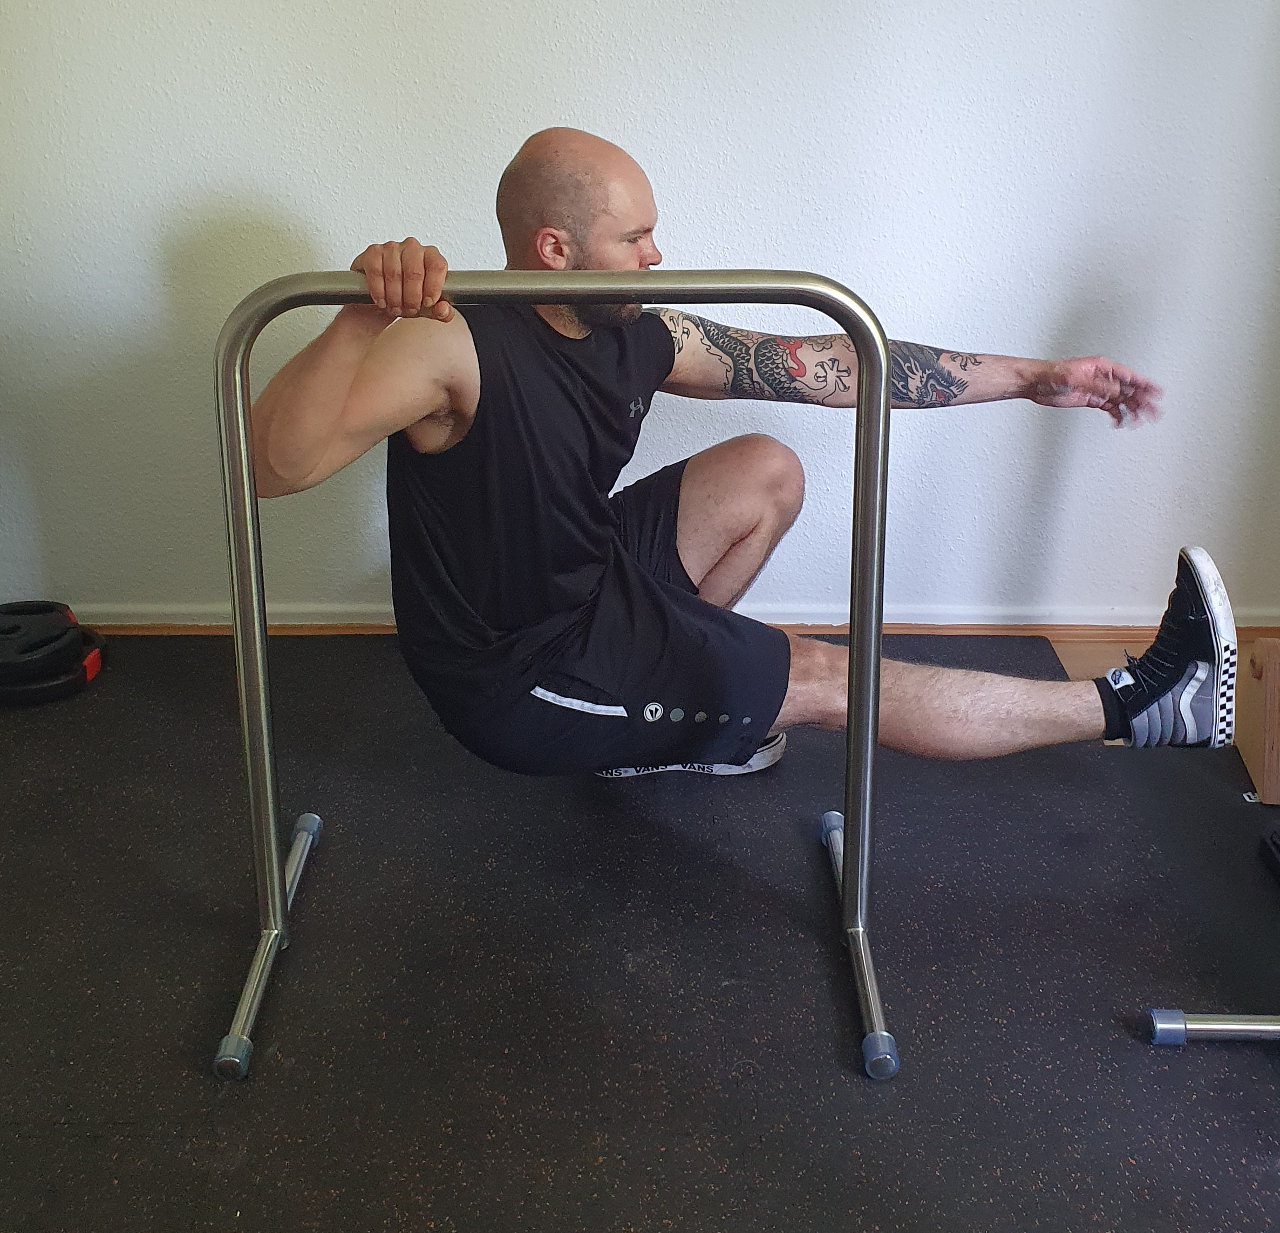 assisted_pistol_squats